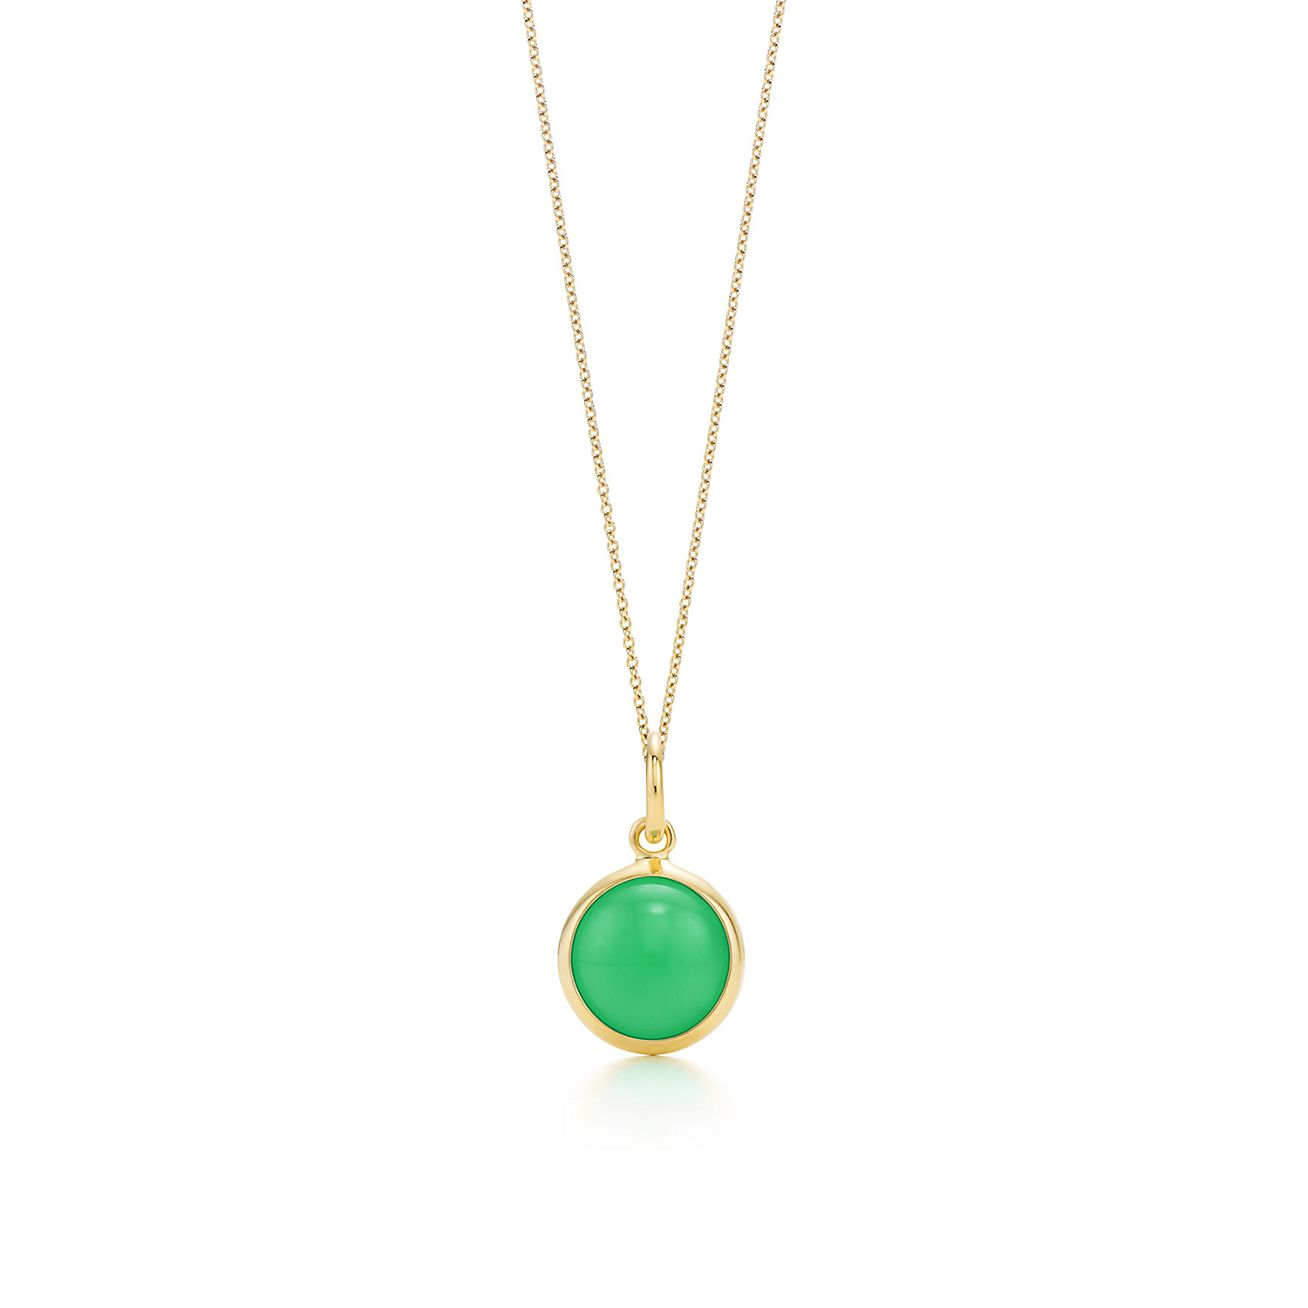 moon chrysoprase necklace ssmdesign crescent products fullsizeoutput